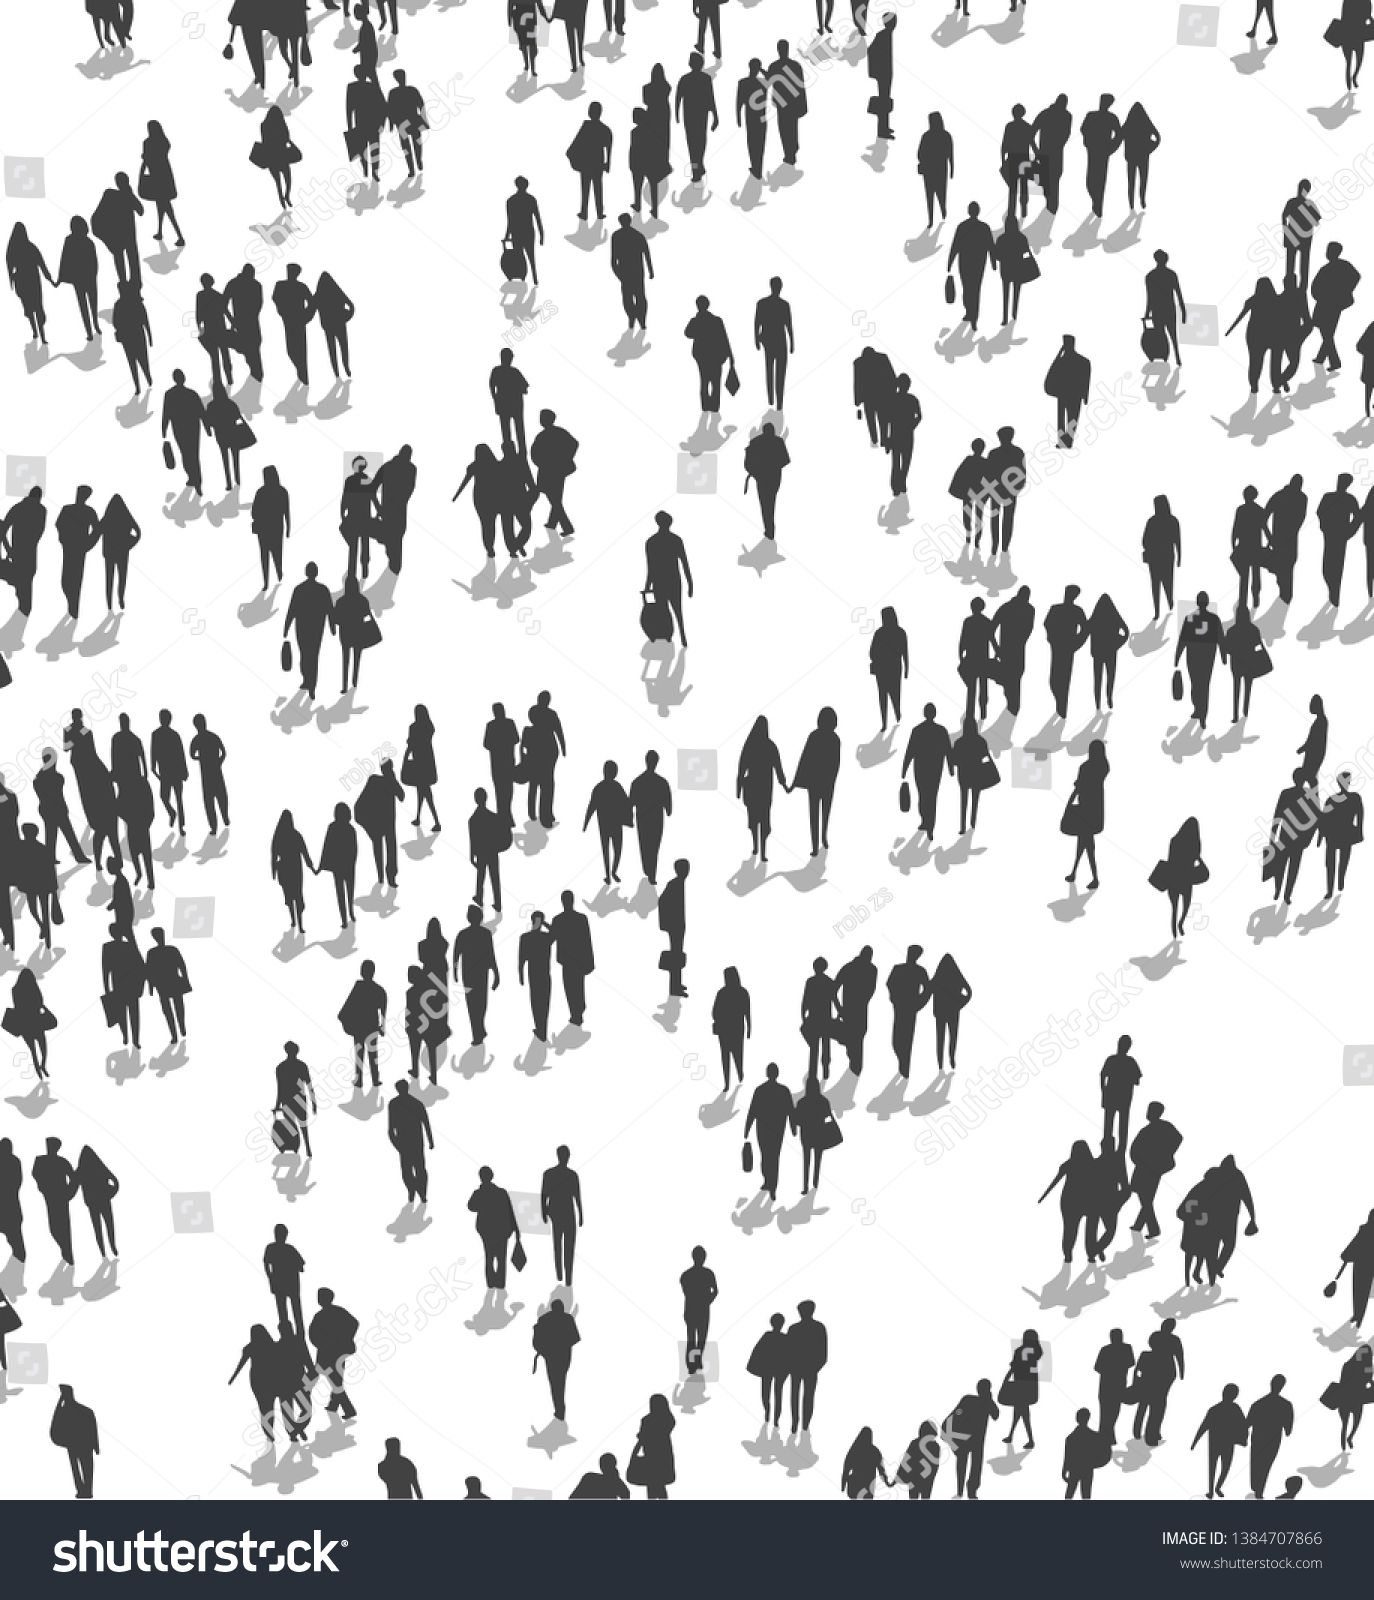 Vector Illustration Of Crowd Of People Walking From High Angle